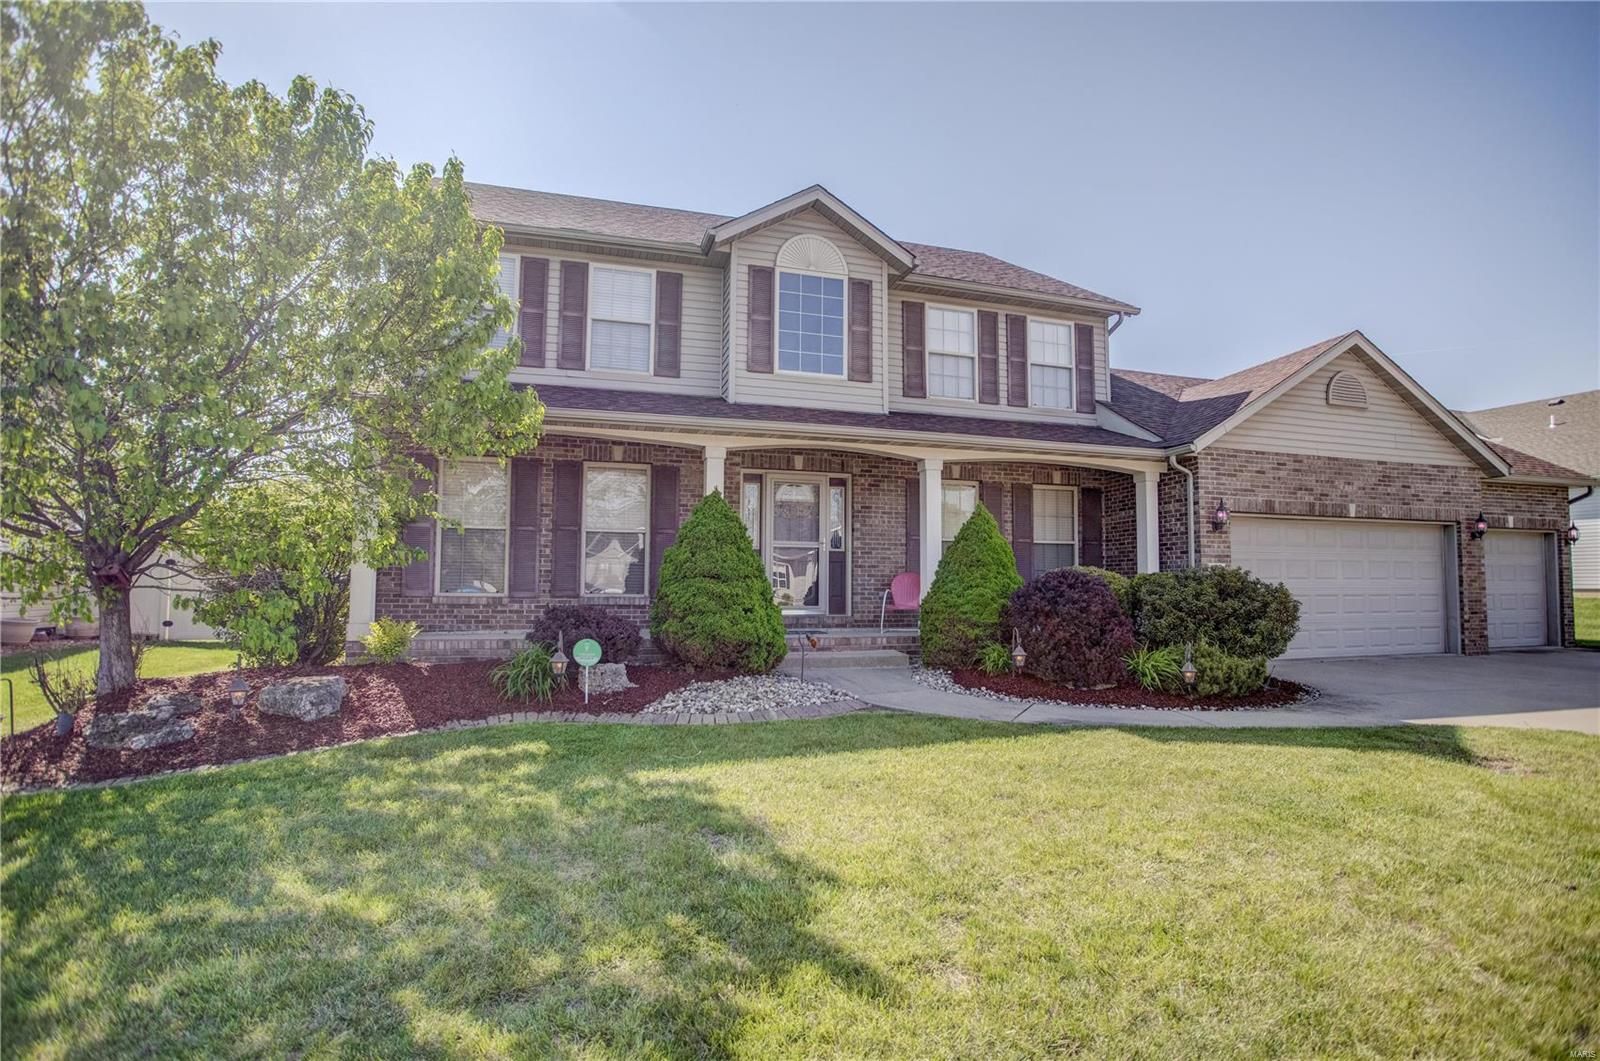 173 Oak Hill Property Photo - Maryville, IL real estate listing